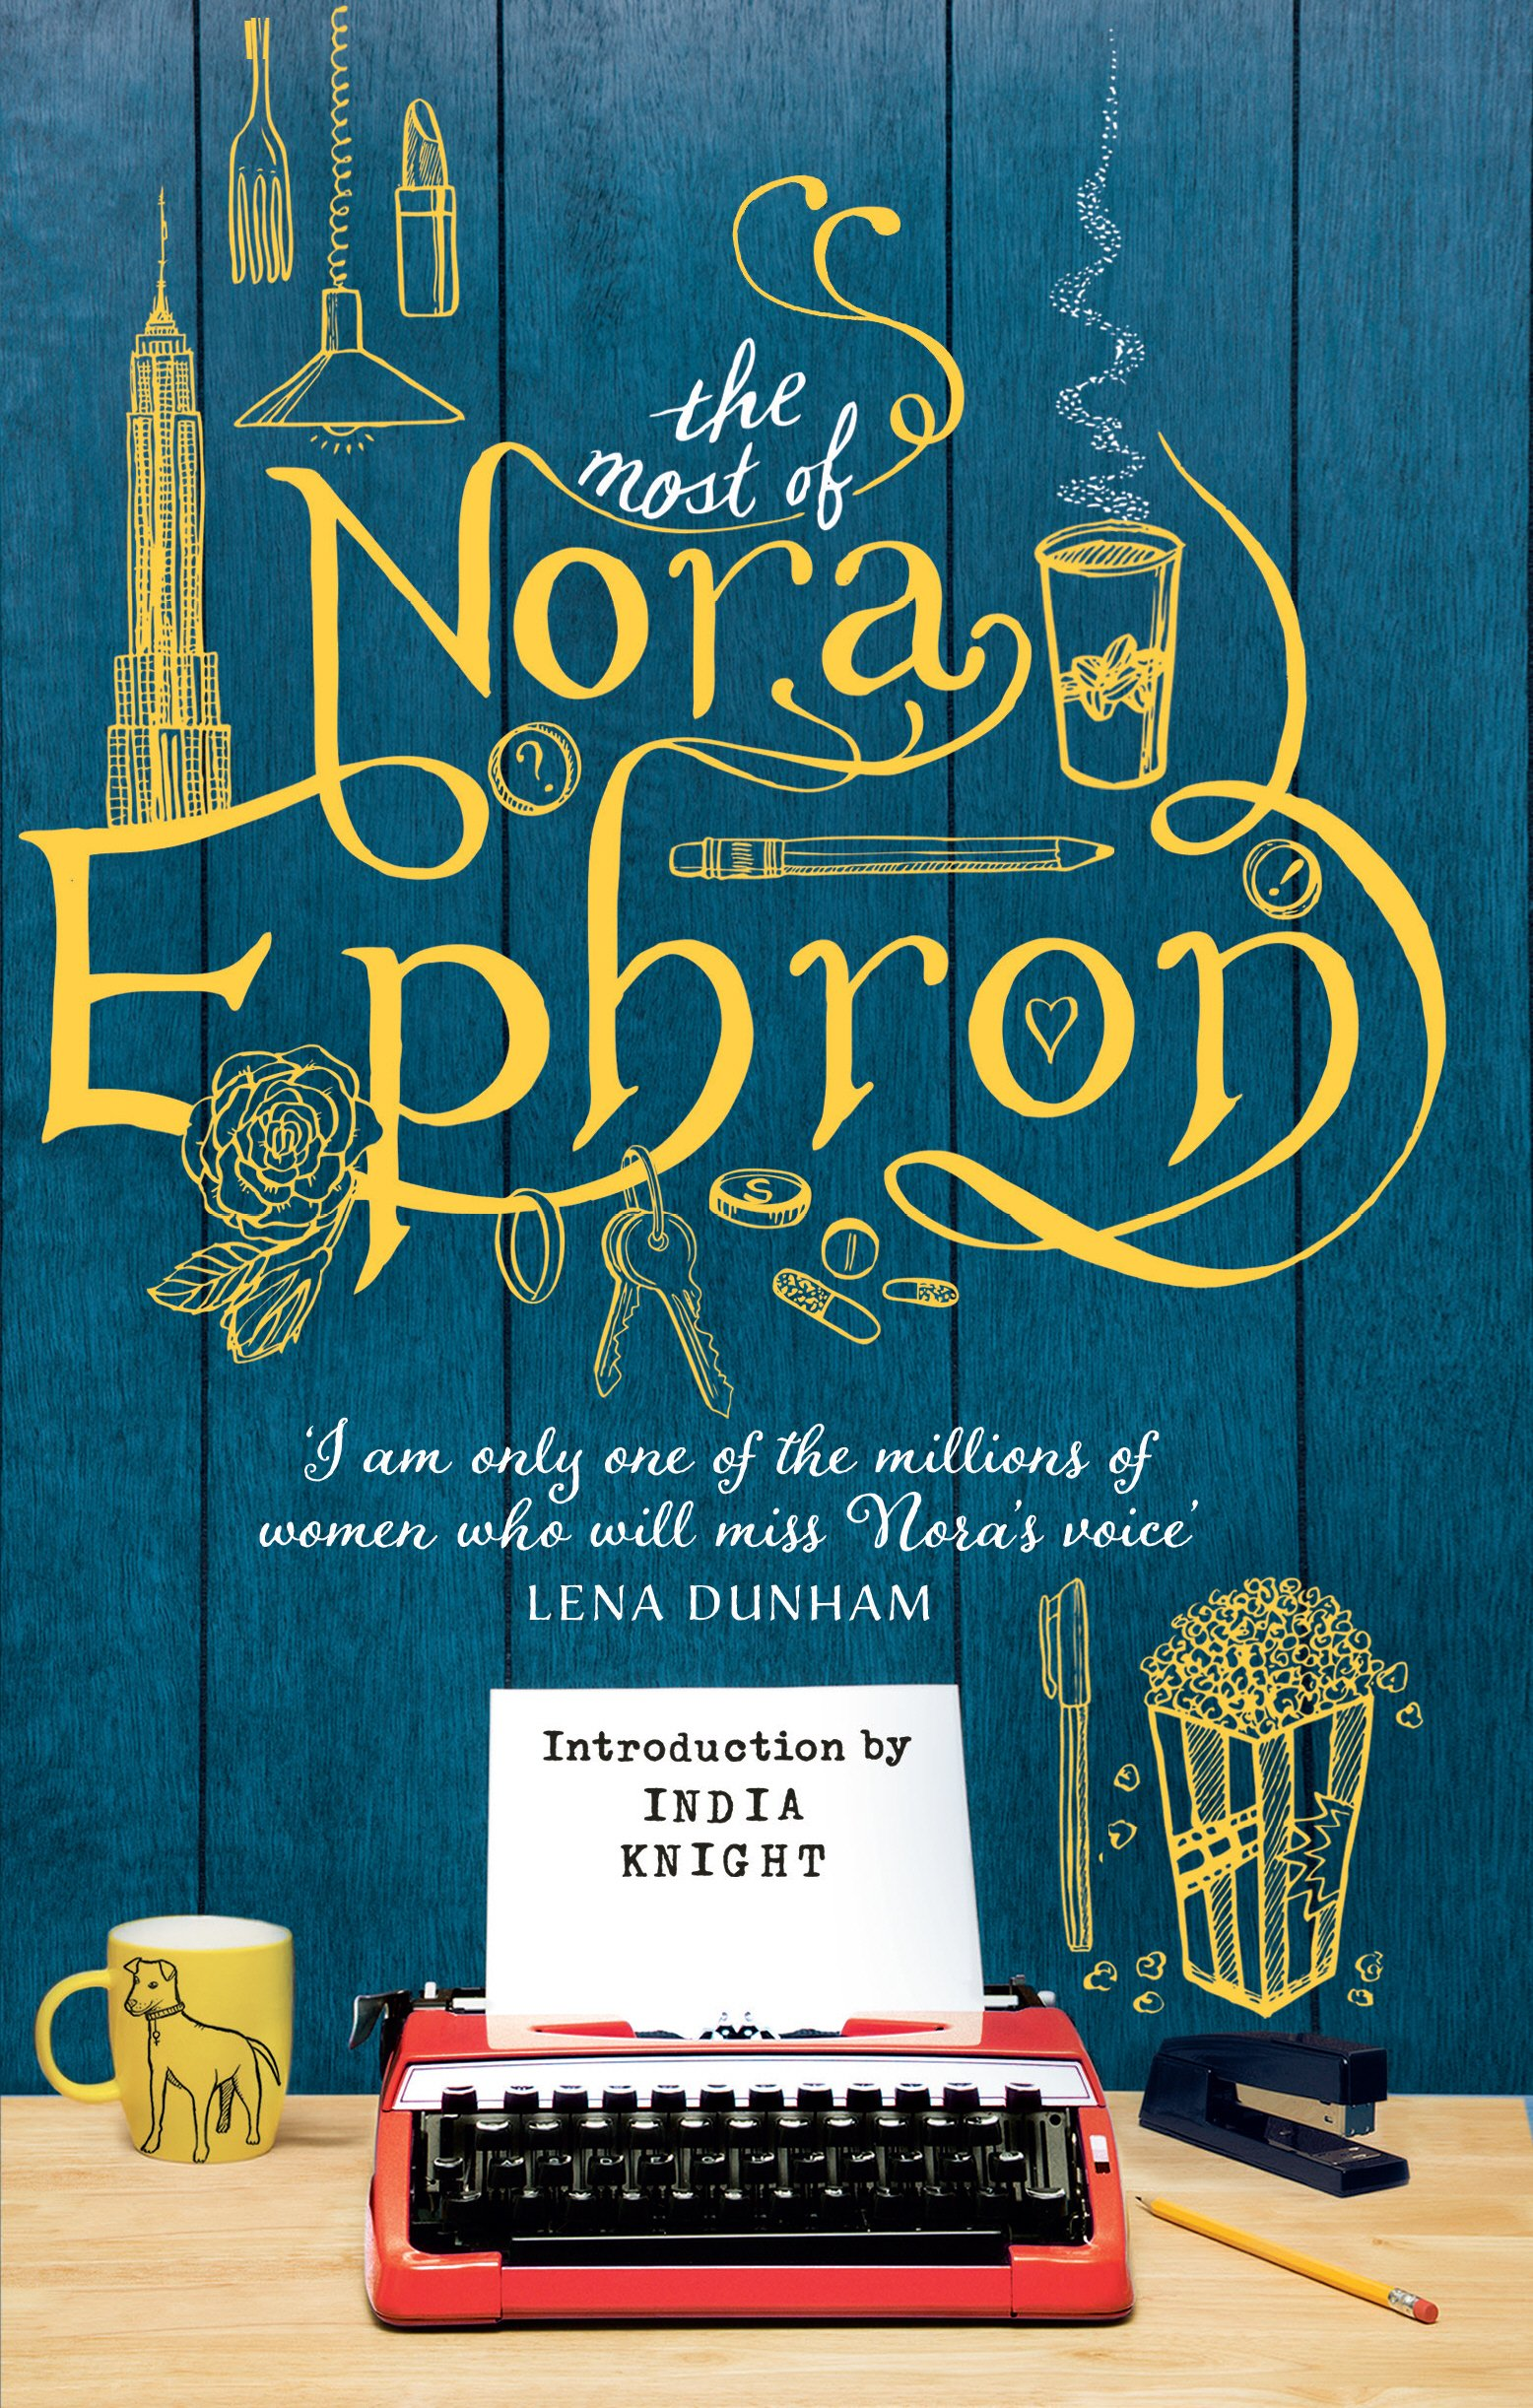 the most of nora ephron amazon co uk nora ephron knight the most of nora ephron amazon co uk nora ephron knight 9781784160098 books